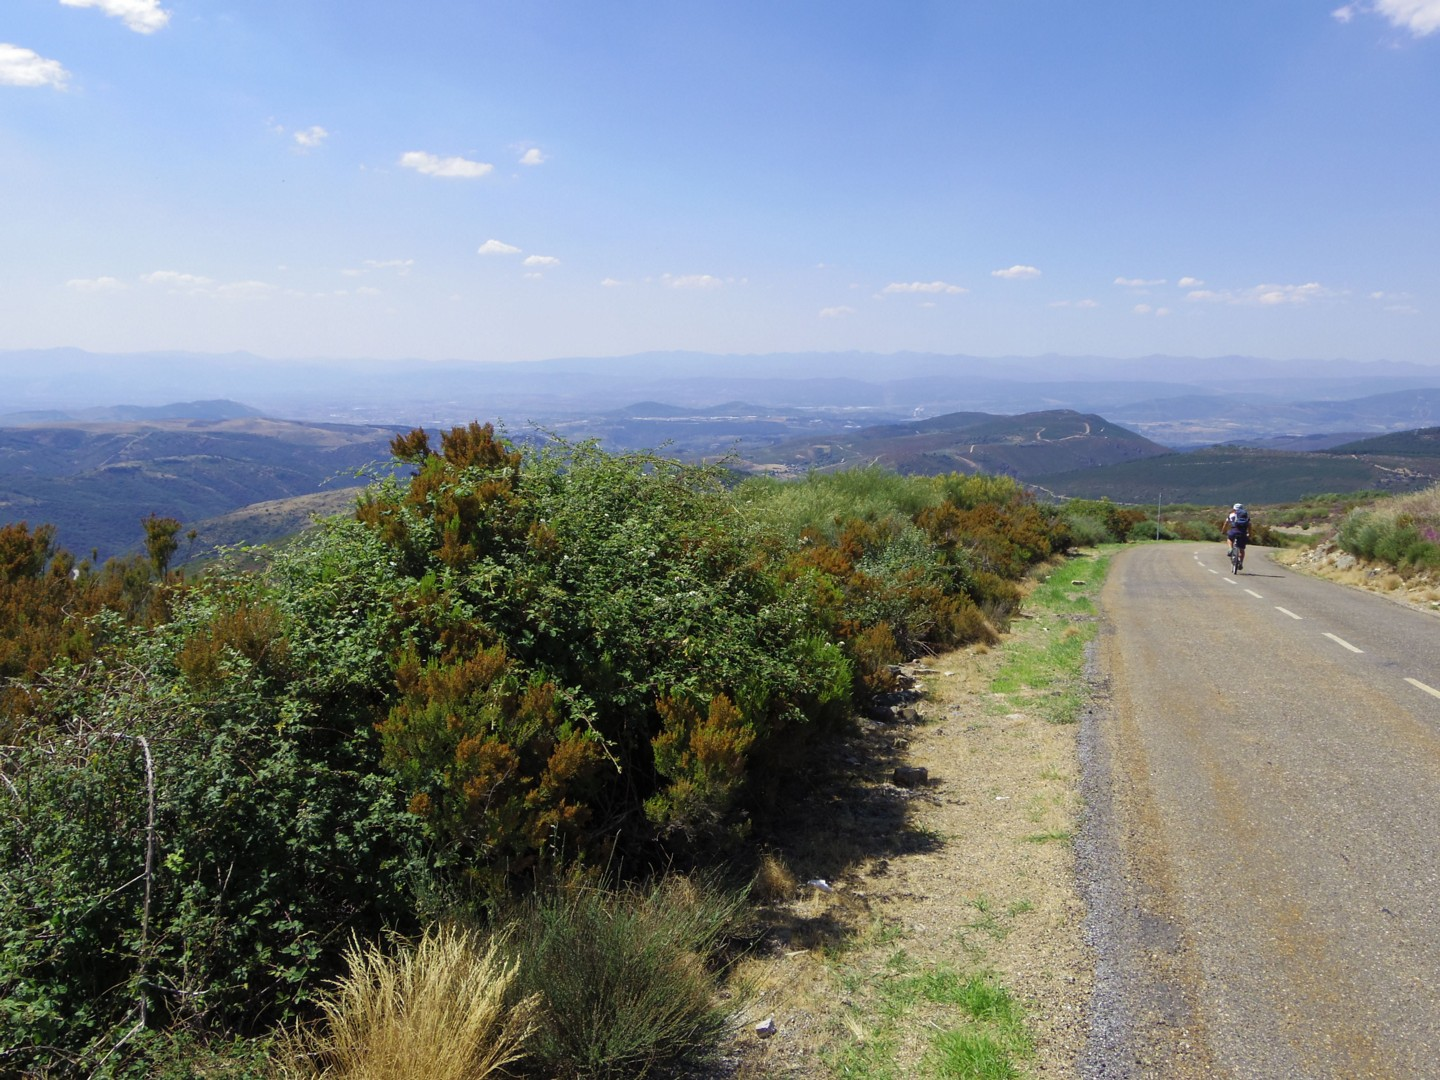 Riojanrolling5.jpg - Northern Spain - La Rioja - Ruta del Vino - Guided Road Cycling Holiday - Road Cycling